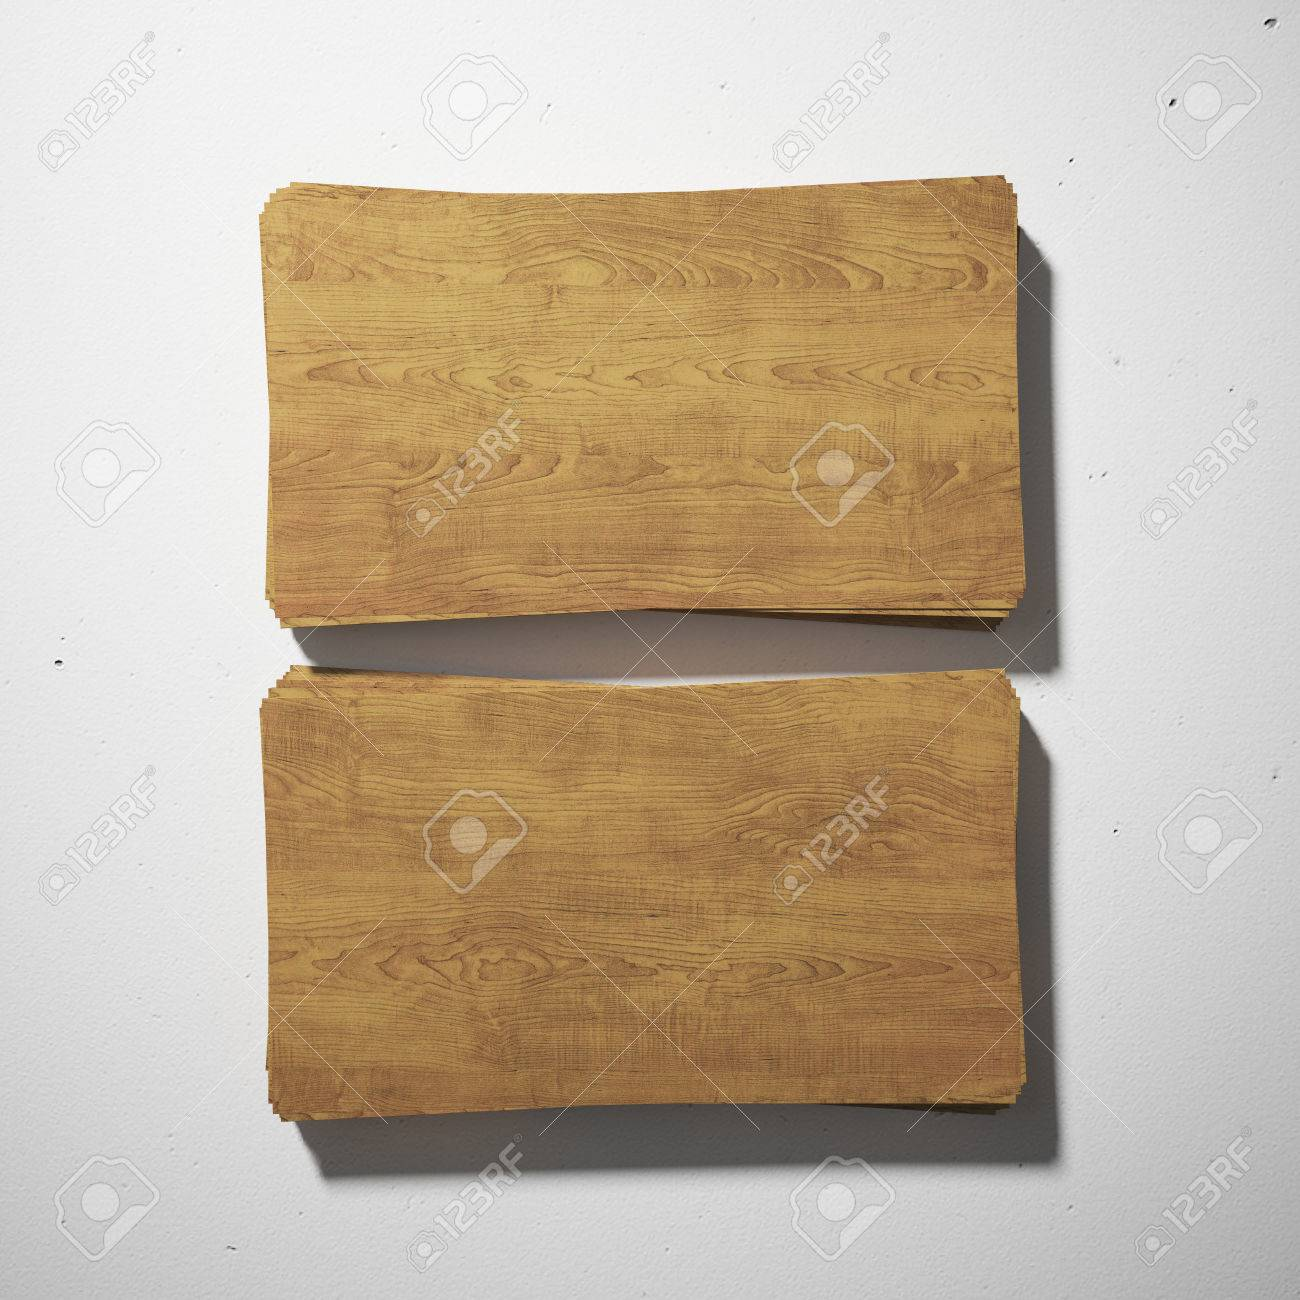 Wood Business Cards On White Concrete Stock Photo, Picture And ...